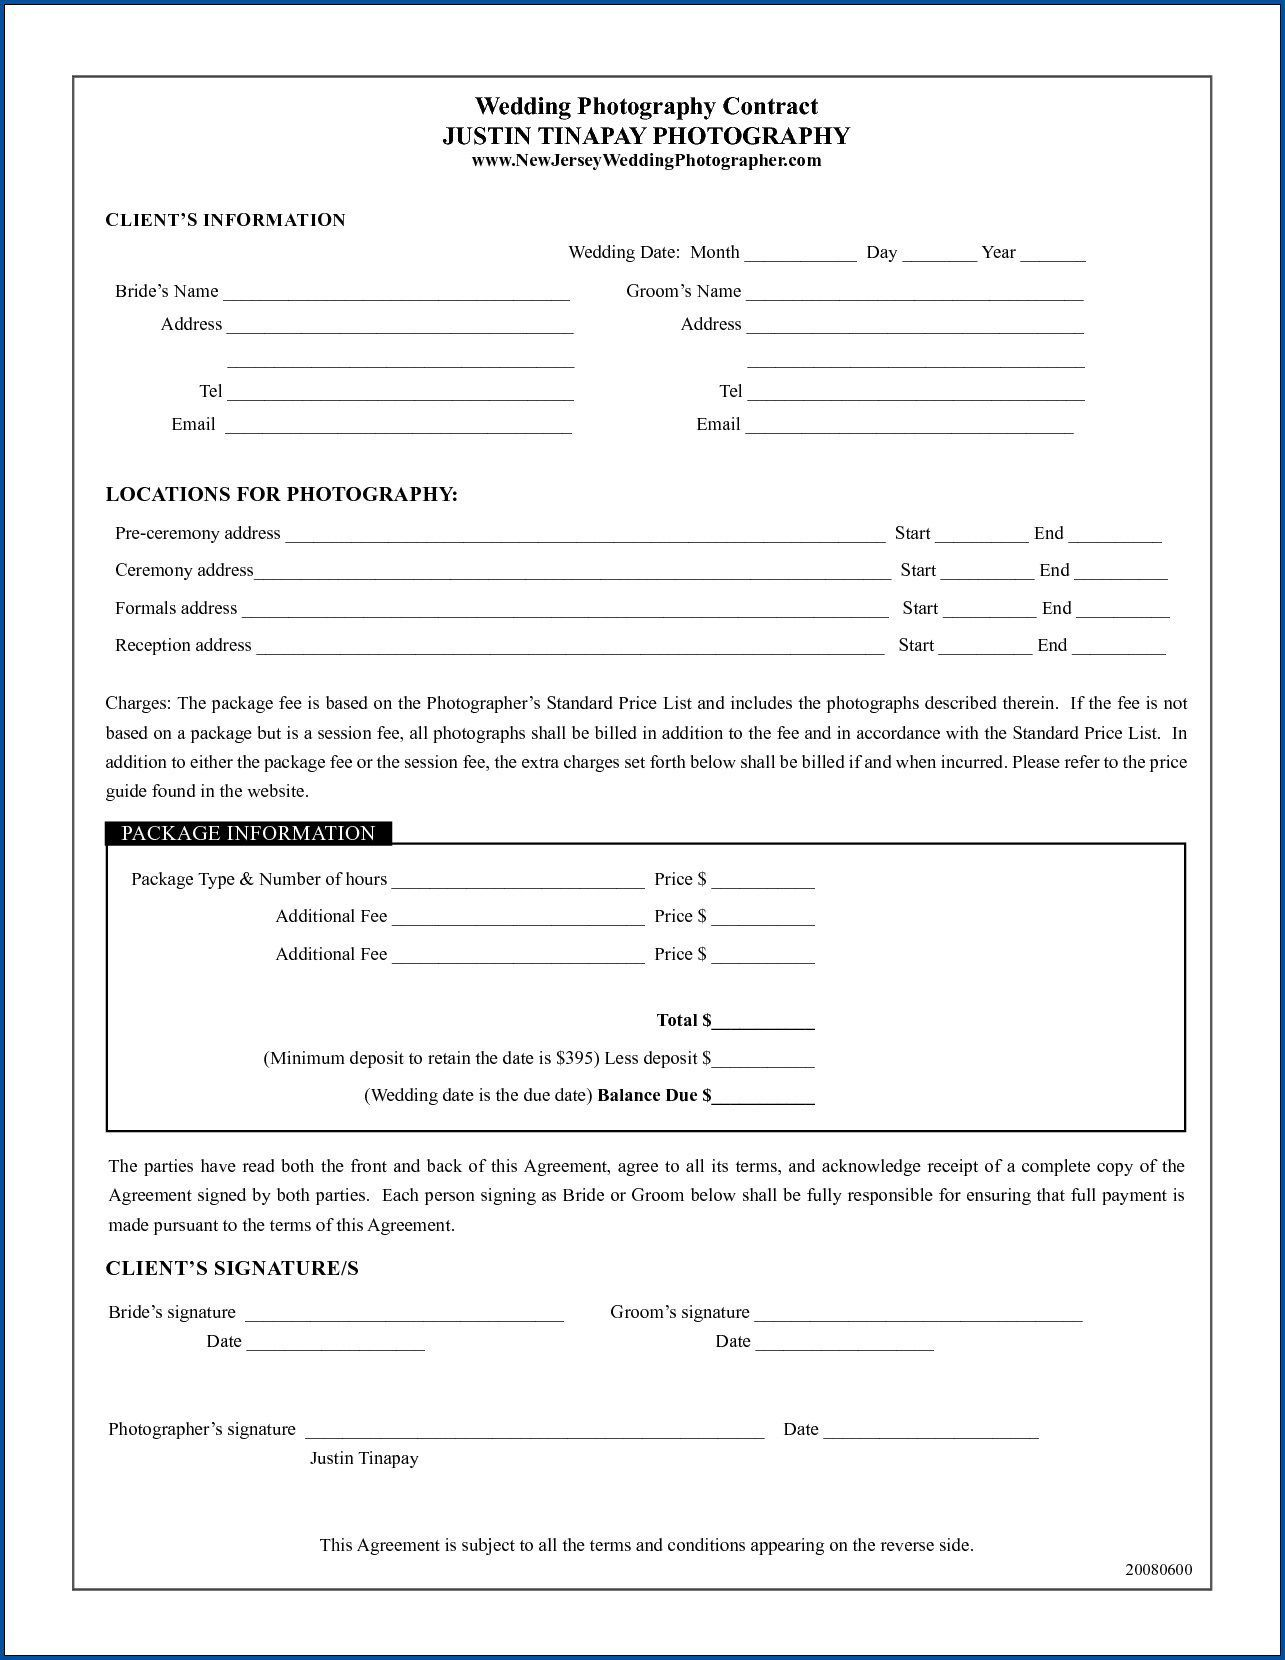 004 Outstanding Wedding Photography Contract Template Canada Example Full